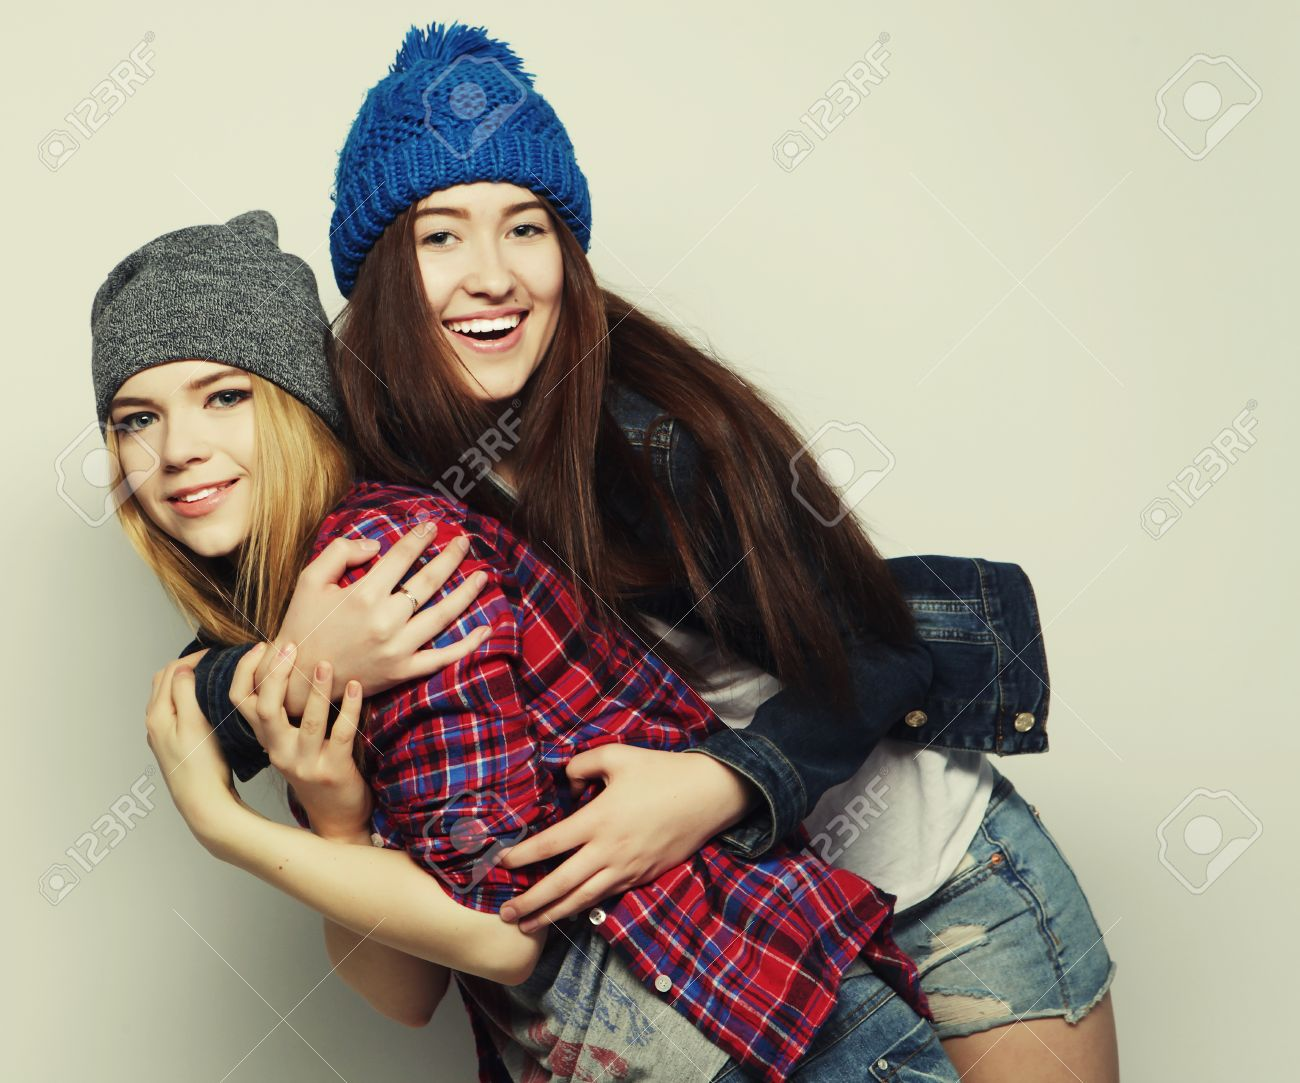 Fashion portrait of two stylish sexy hipster girls best friends, wearing cute swag outfits and